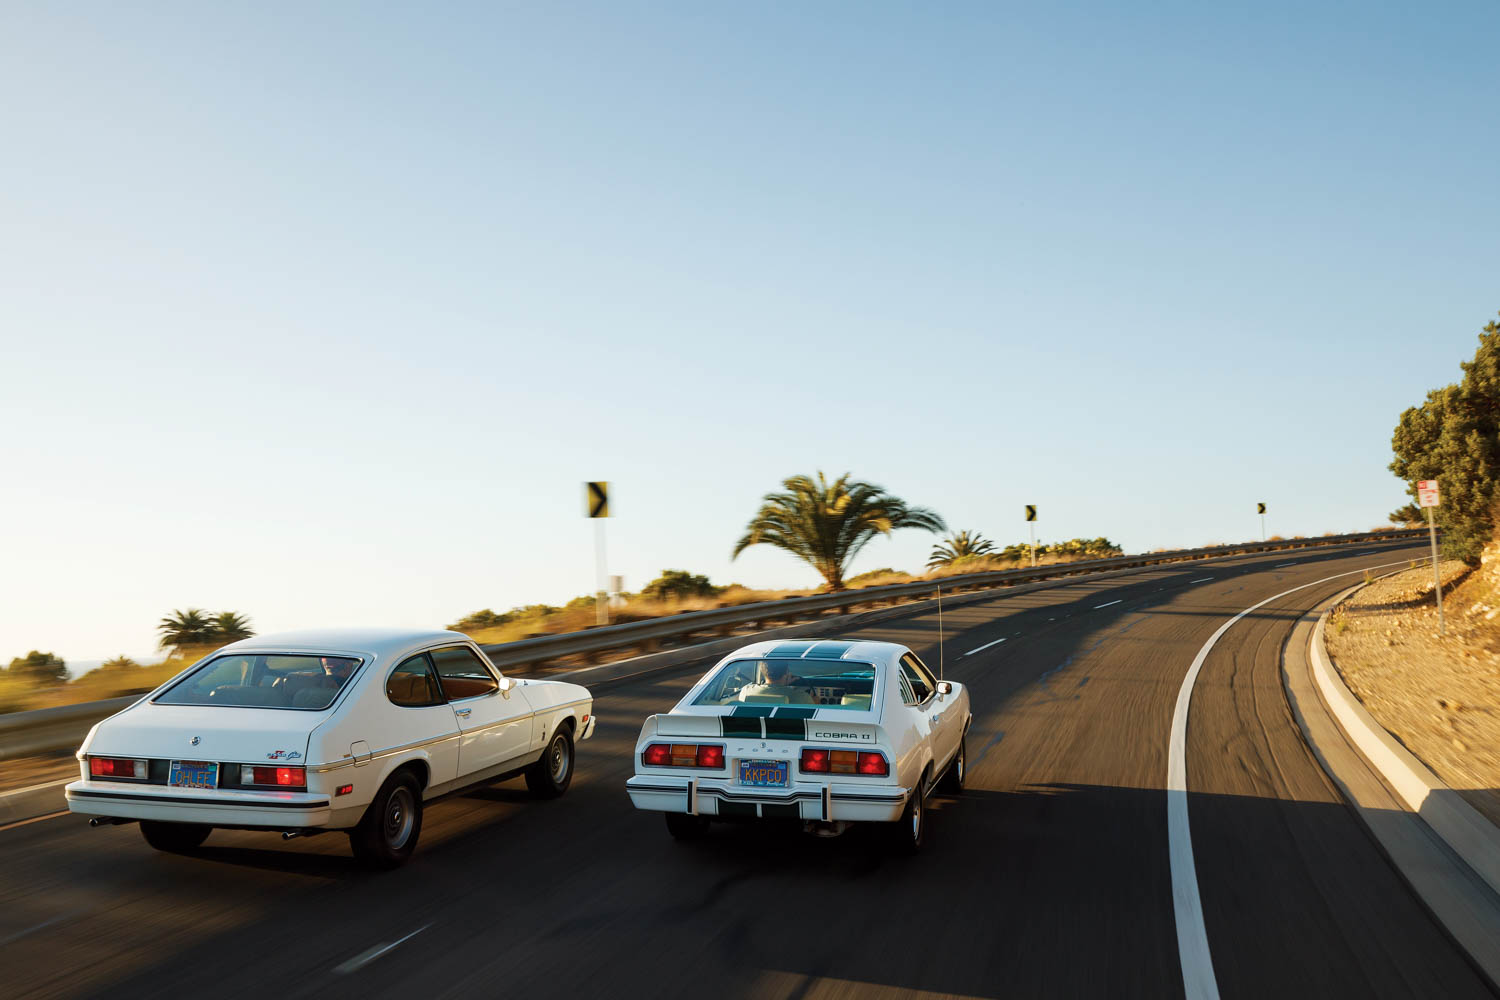 Despite being way down on displacement, the Capri had no problem keeping up with the V-8 Cobra as we meandered through Palos Verdes, California.